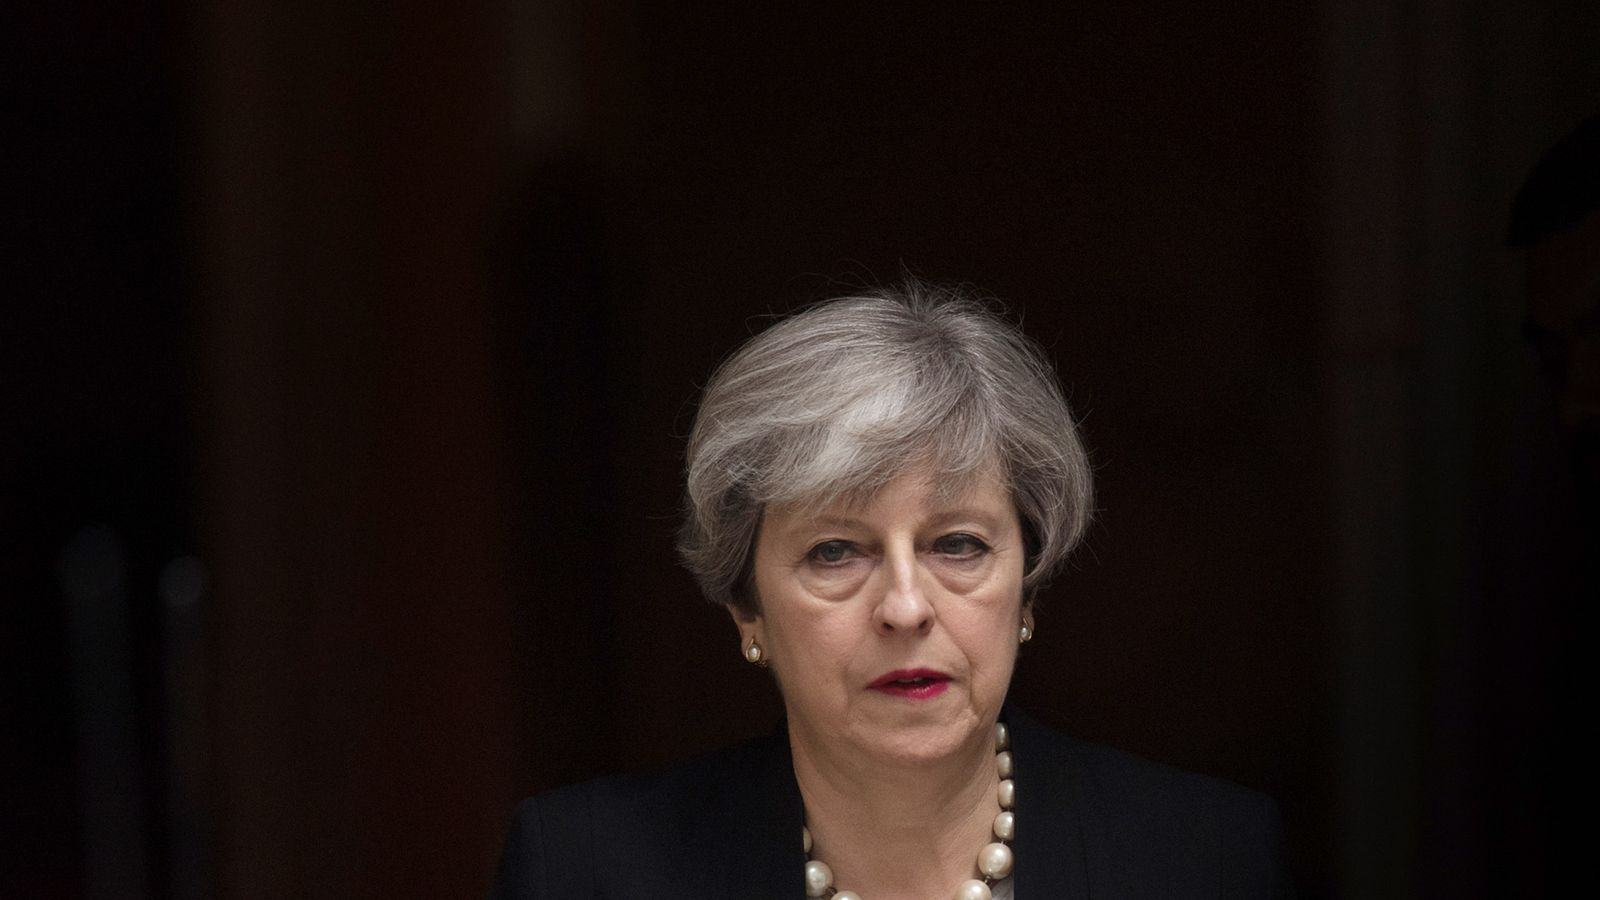 May set to confirm departure date as backbench showdown nears